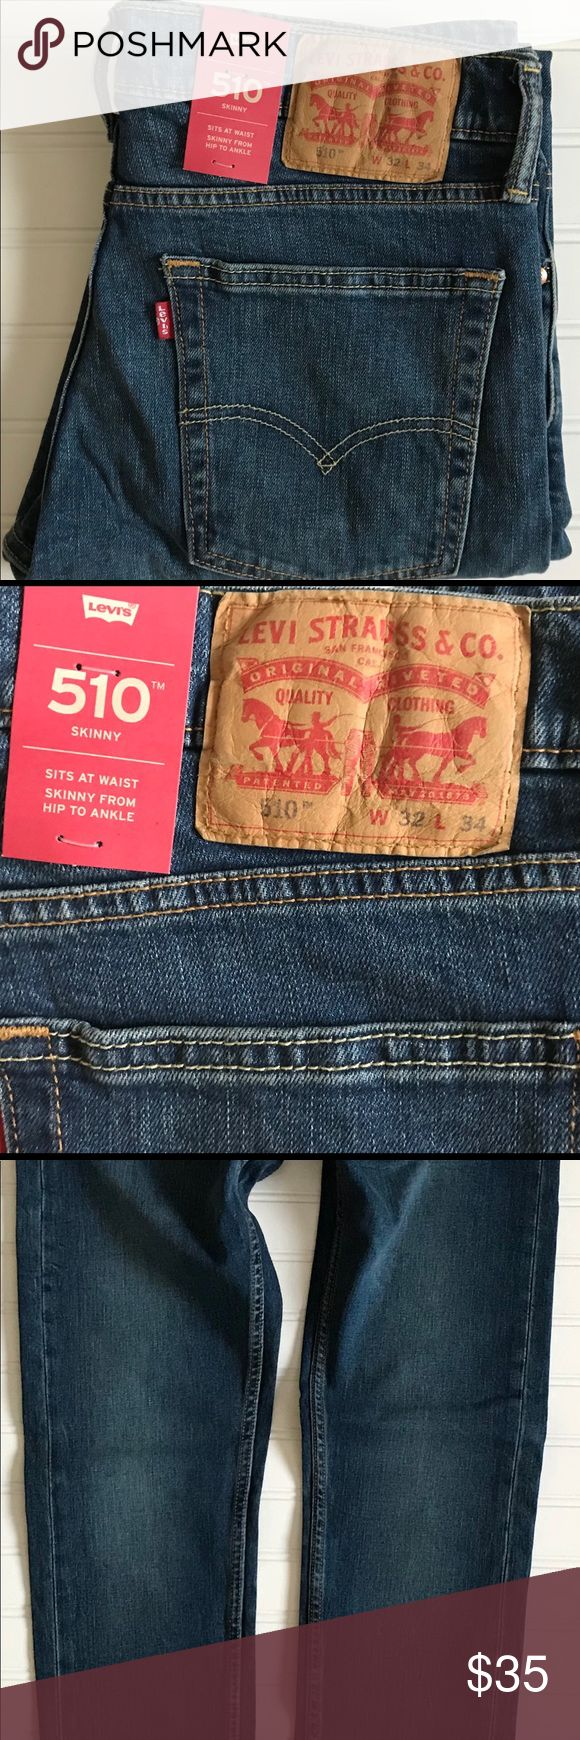 LEVI'S 510 Skinny Jeans! Med. Wash  NWTS! W32 L34 LEVI'S 510 Skinny Jeans!  Medium wash. Brand new with tags!  Slight factory fade on fronts of legs. Comfort stretch. NICE! Tag size W32 L34 Measures: W 32 L 33 Rise: 11 inches Leg opening: 6 inches Levi's Jeans Skinny